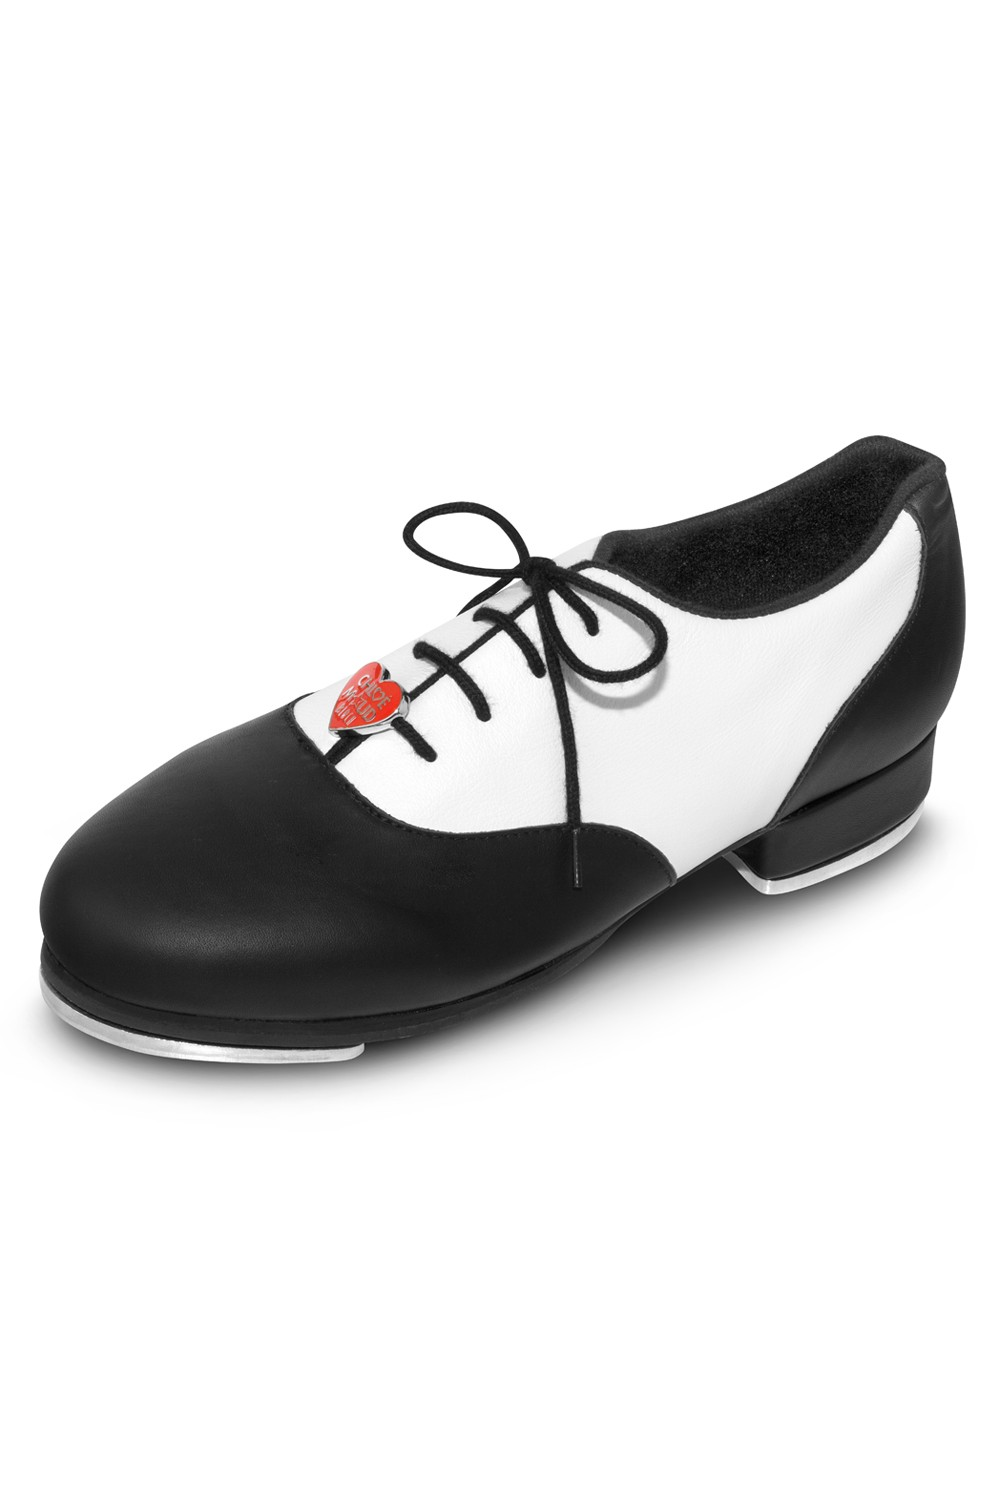 00e1af1a6001 Professional Quality BLOCH® Tap Shoes - BLOCH® US Store